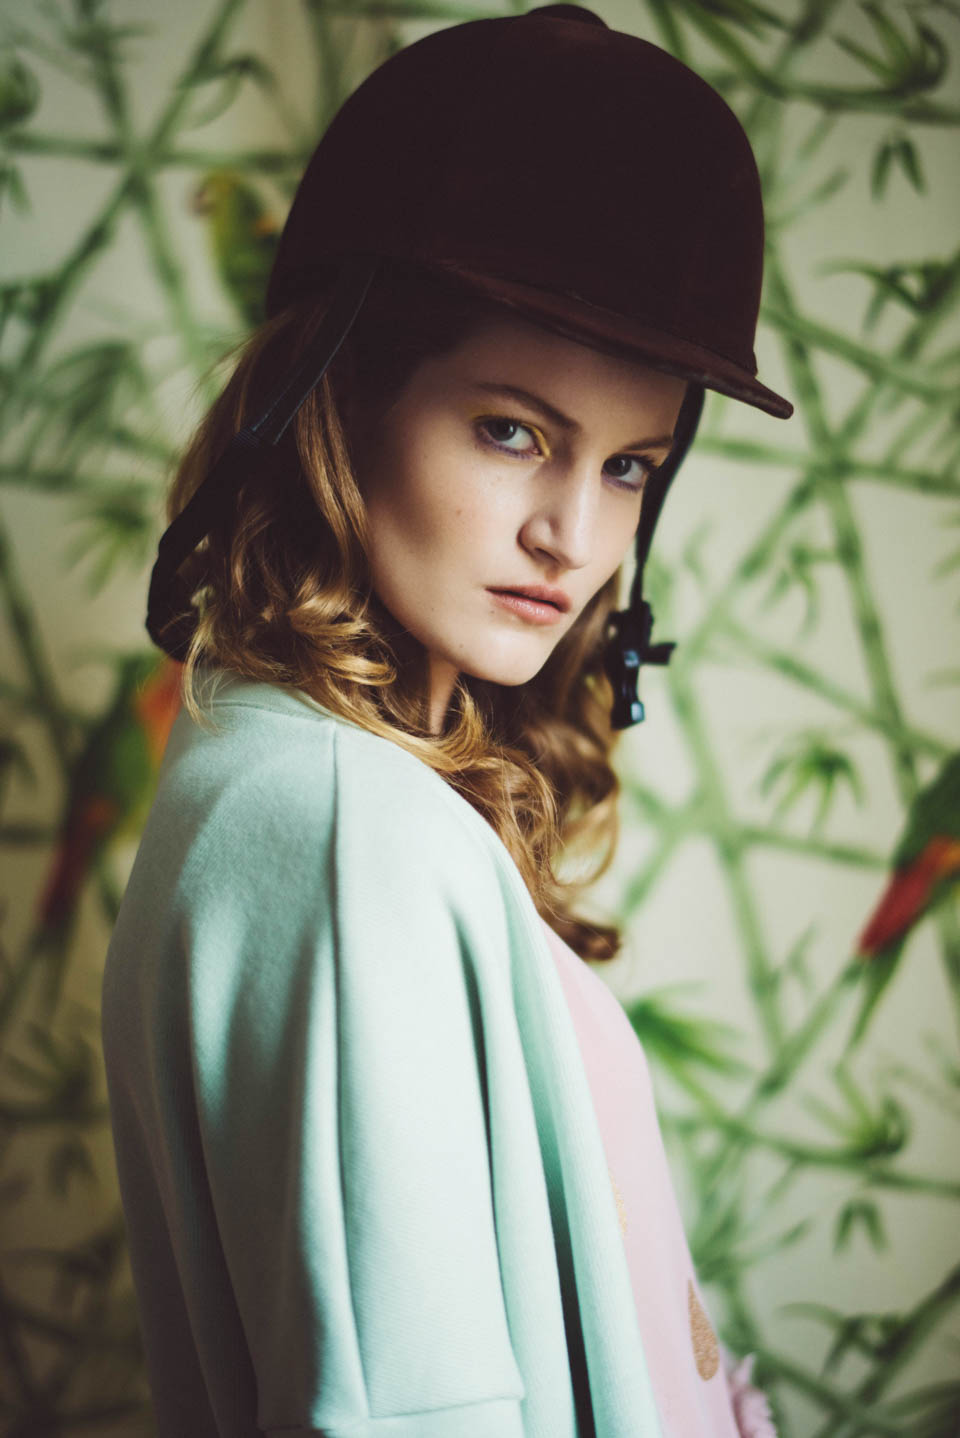 fashion editorial for cake magazine shot in cologne germany by fashion photographer erika astrid_18.jpg